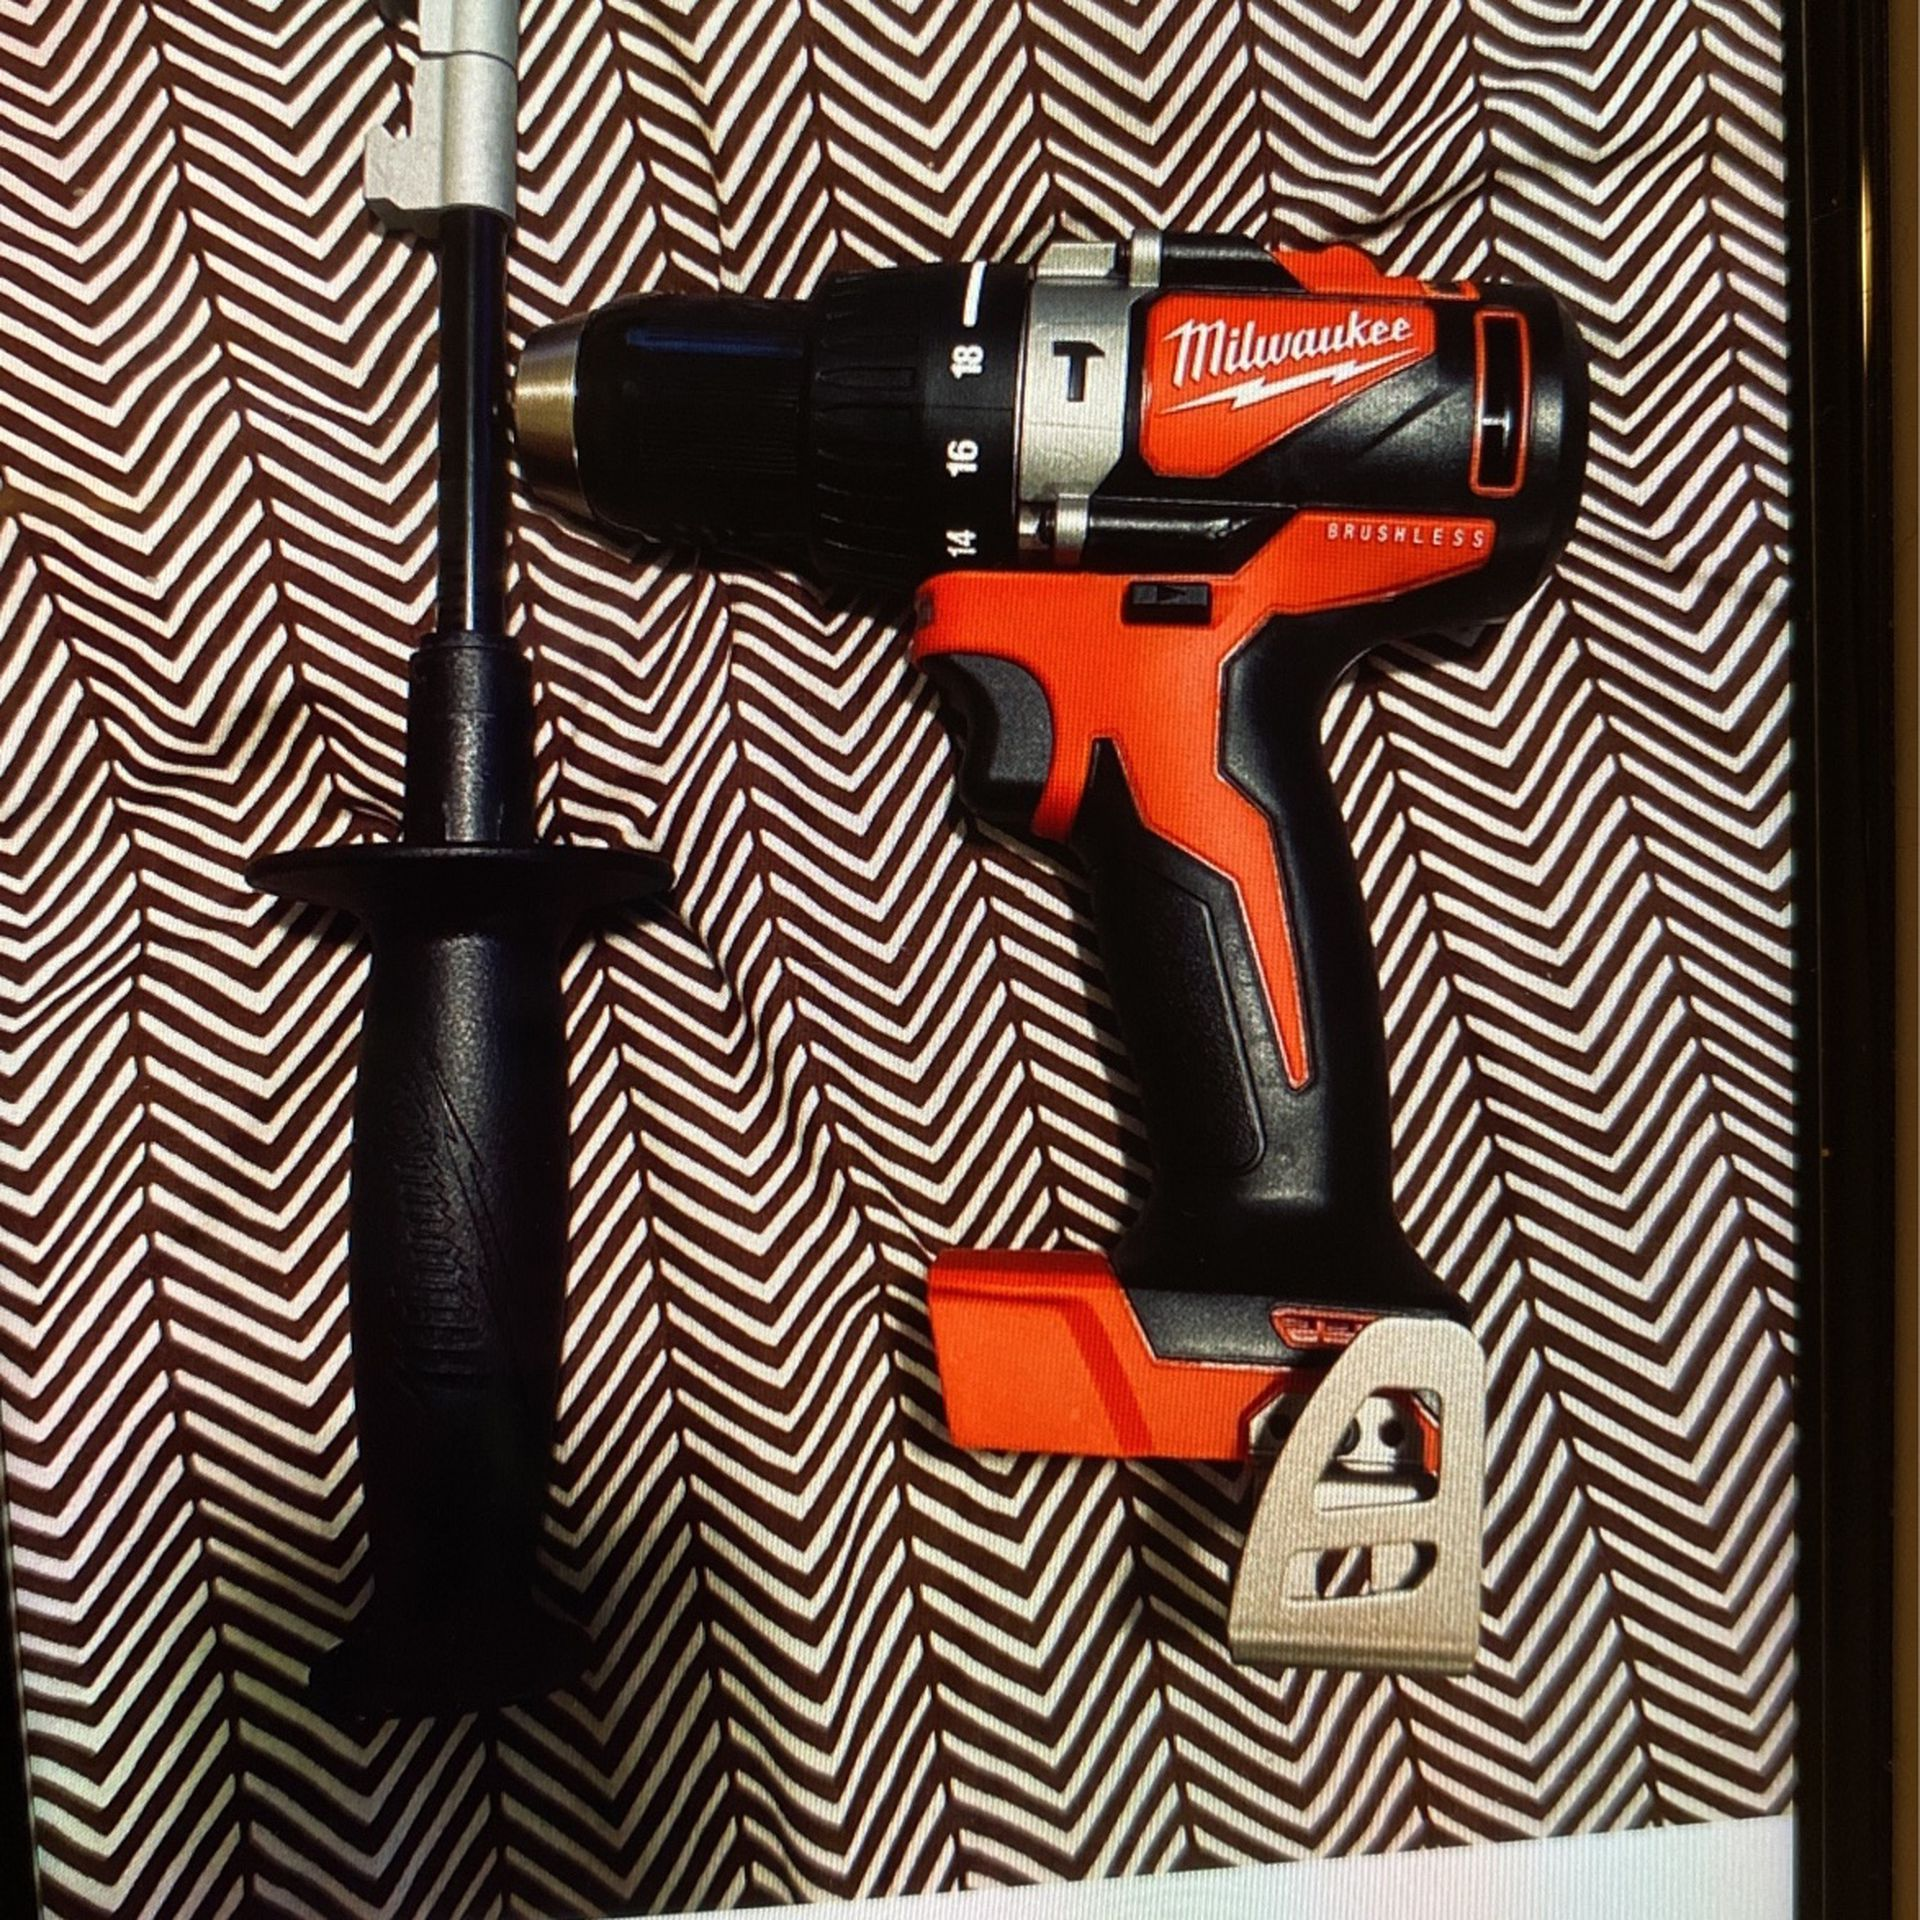 Milwaukee New Hammer Drill No Battery No Charger